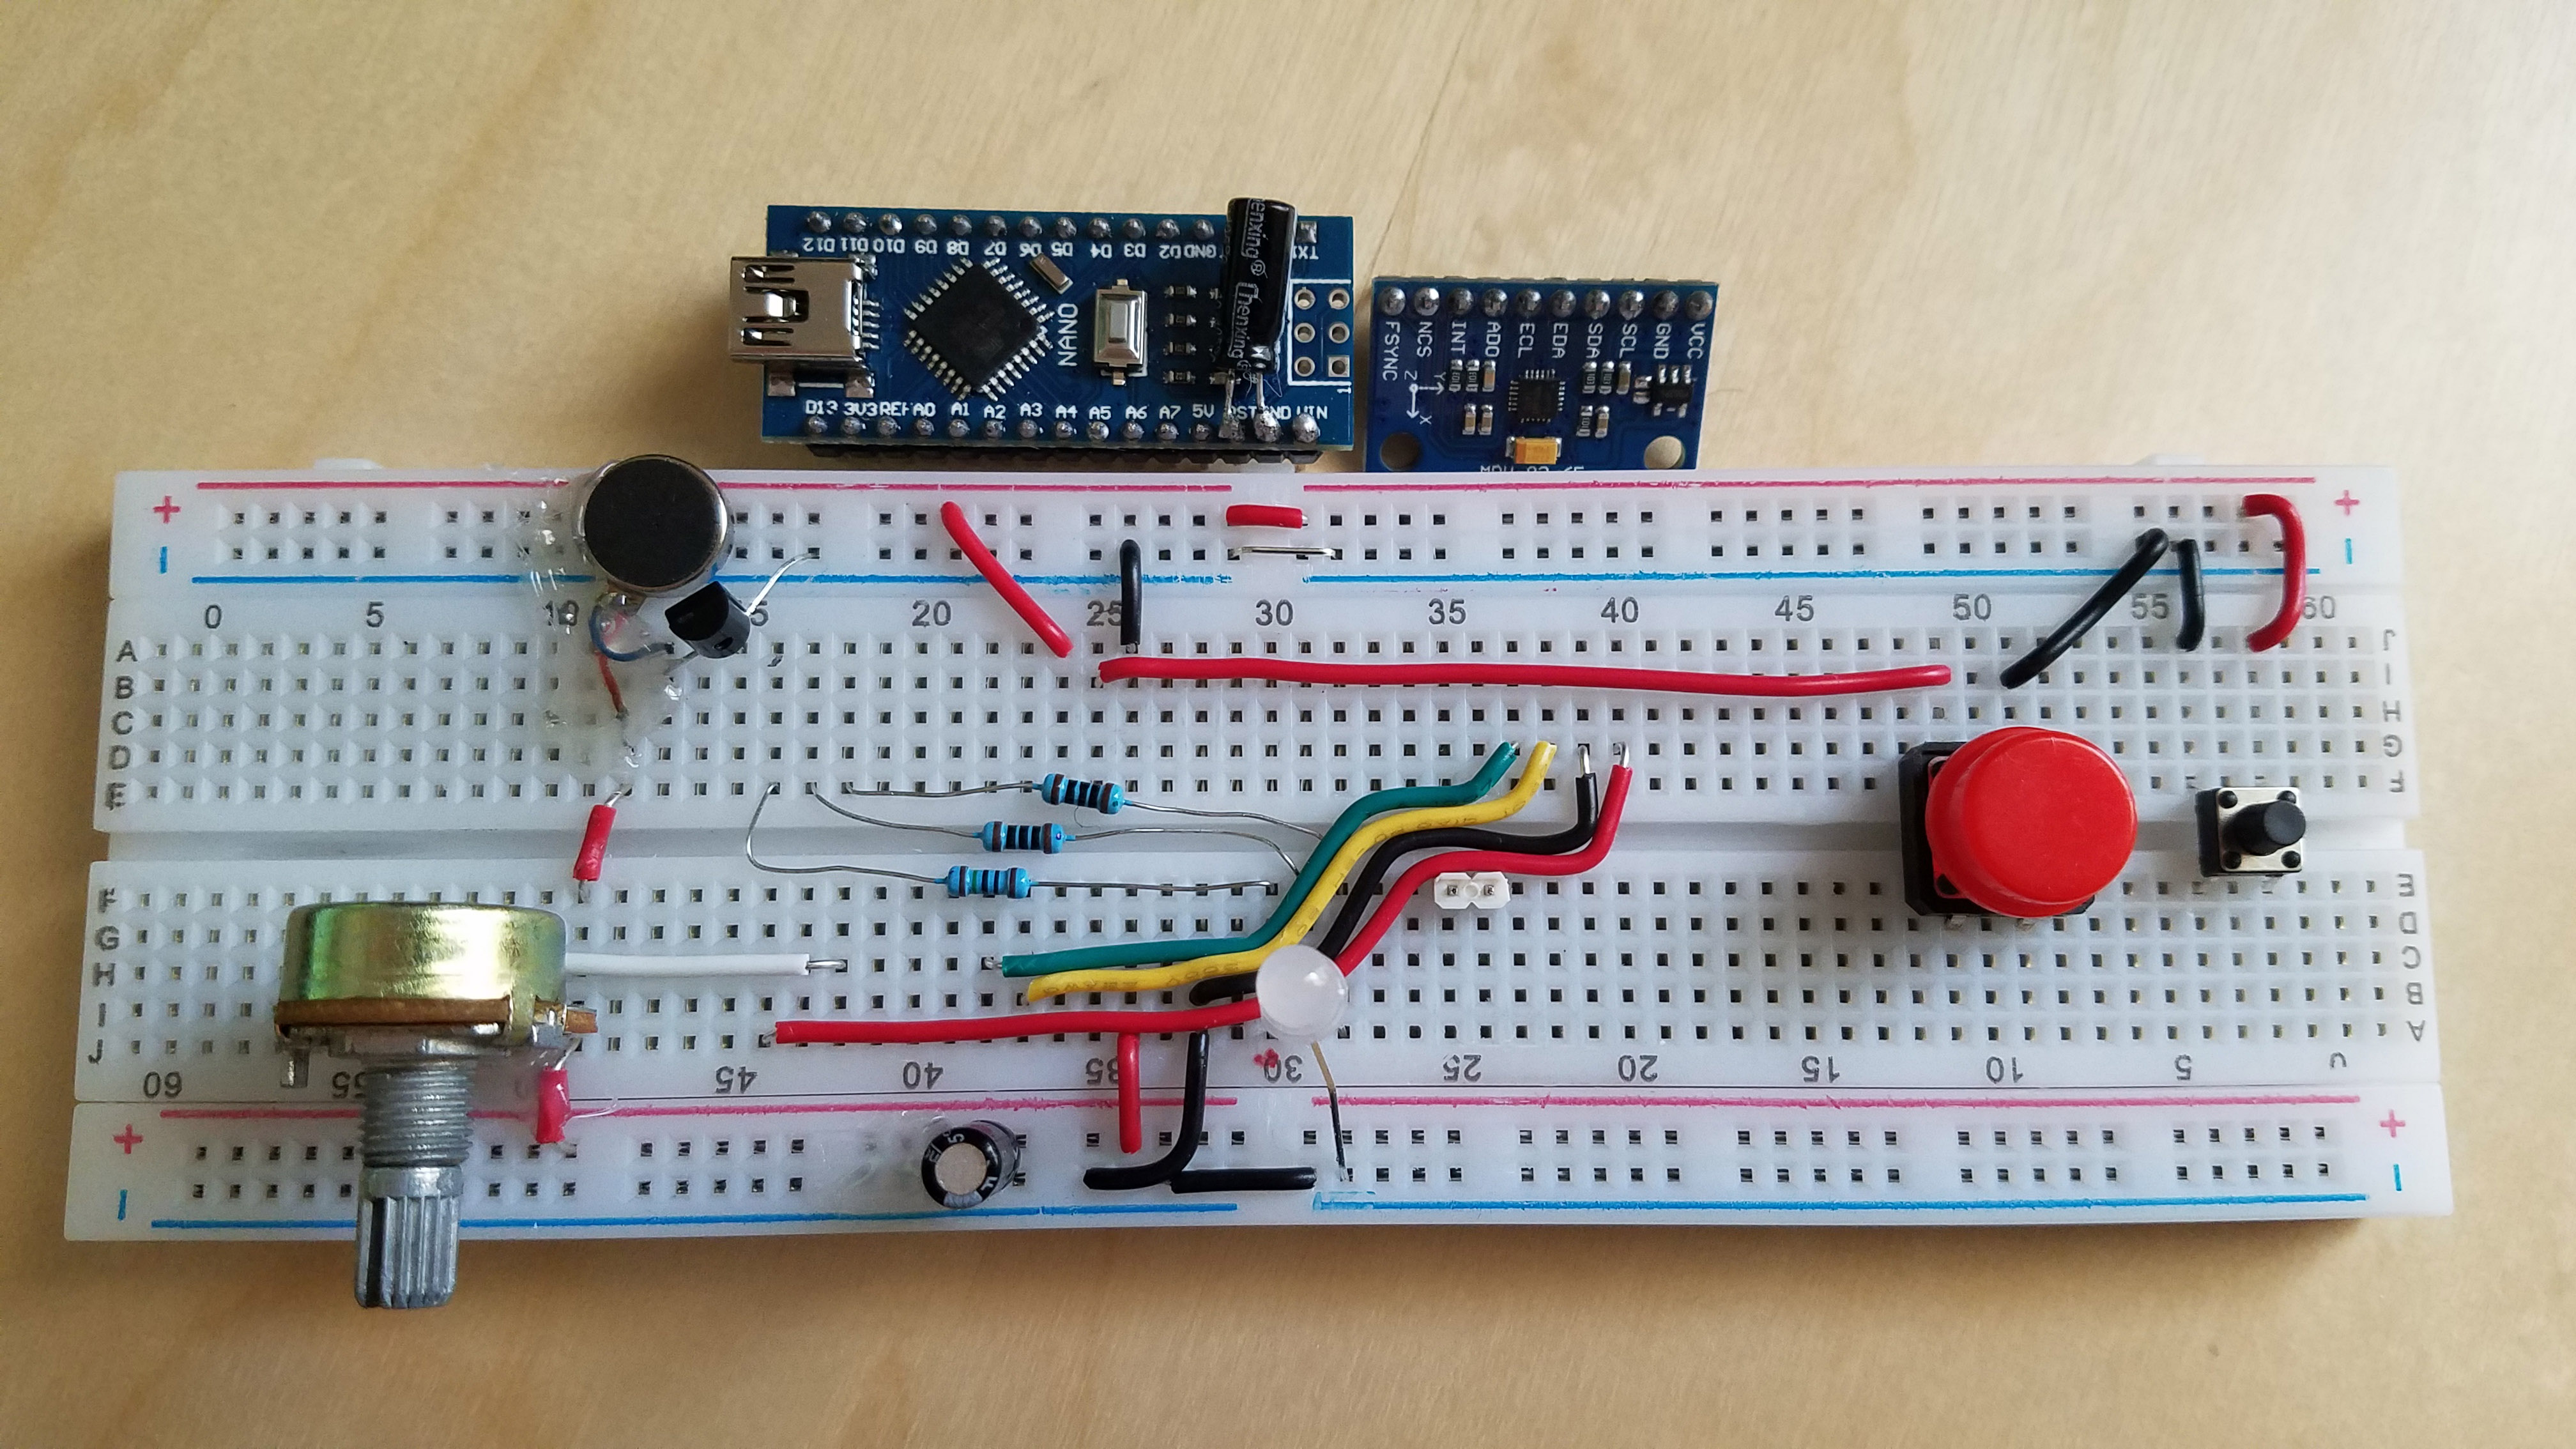 Diy arduino unity motion controller aidan lawrence a do it yourself electronics program that communicates accelerometer data to a game built in unity solutioingenieria Images